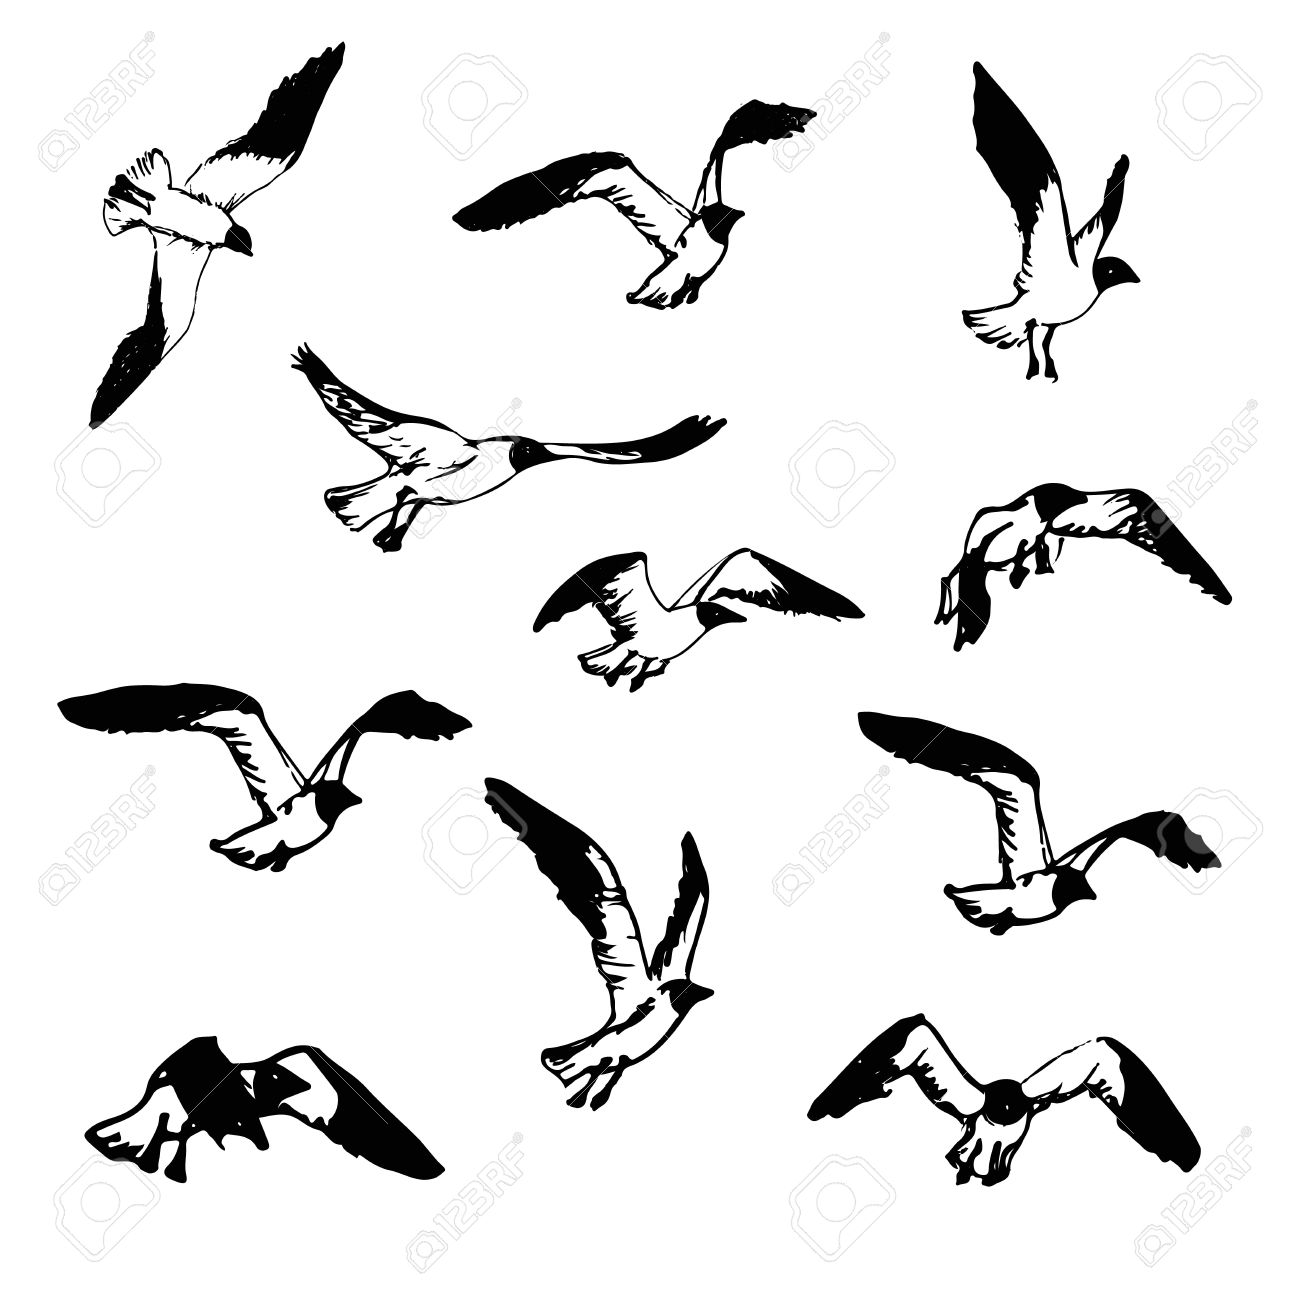 1300x1300 Hand Drawn Flying Seagulls. Black And White Illustration Sketch